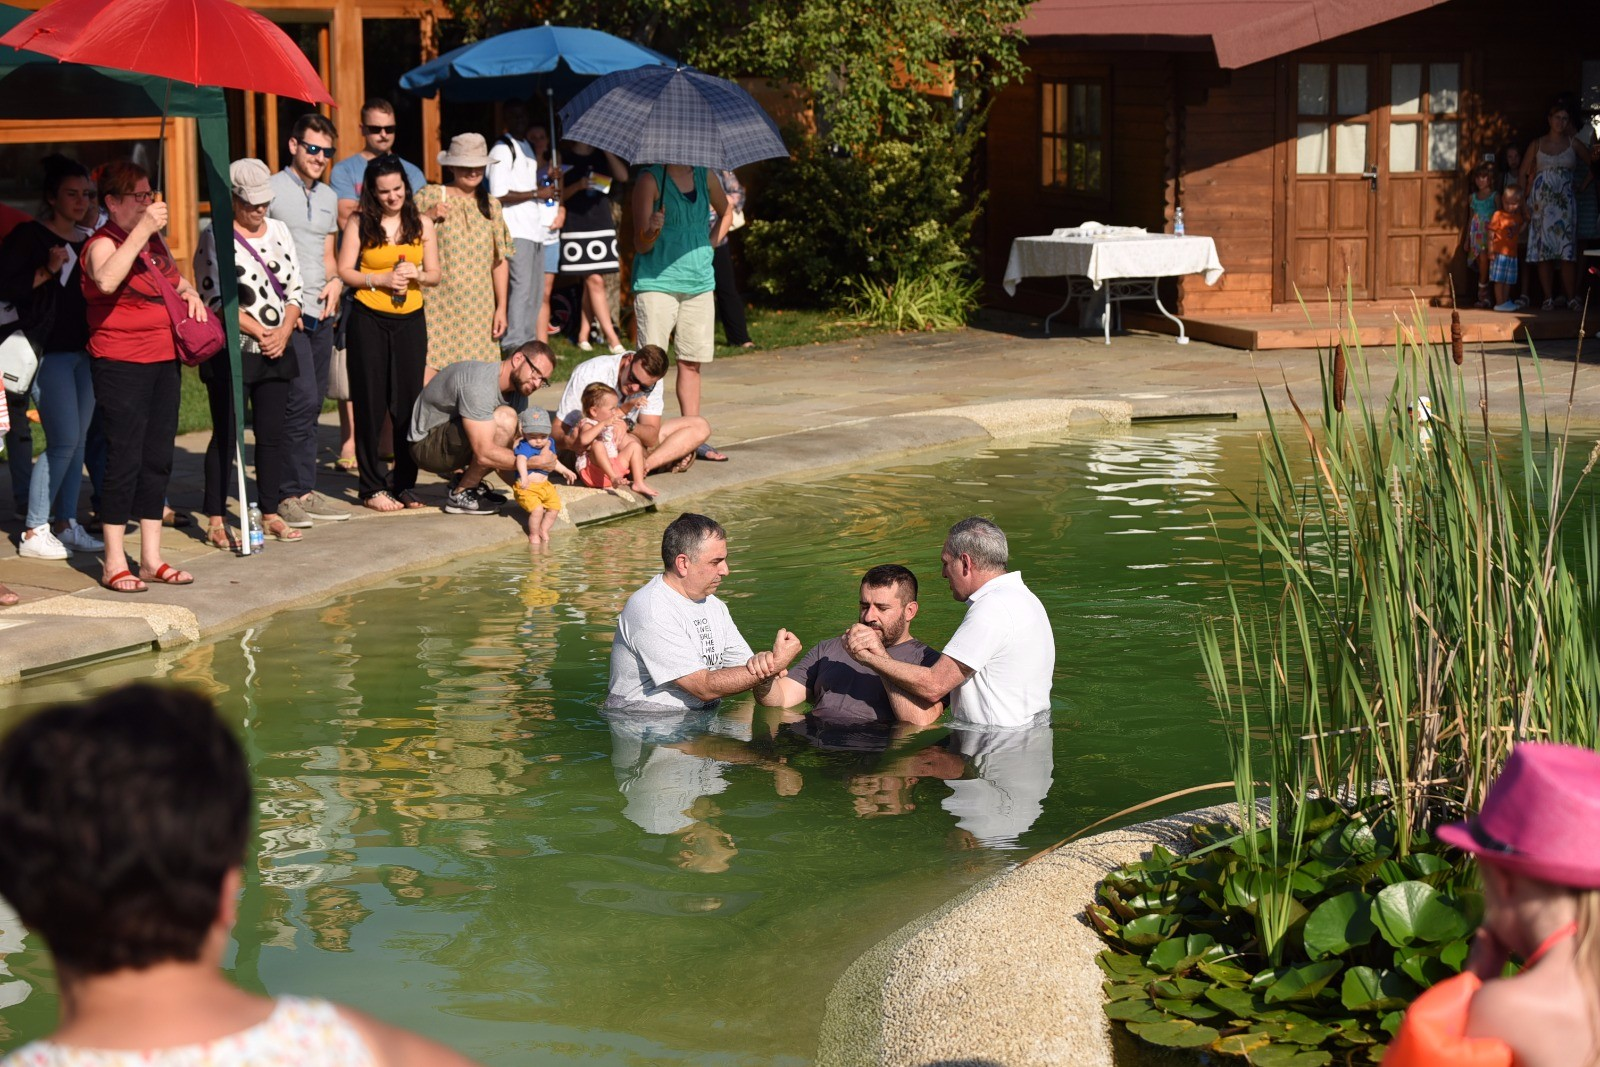 July 29, 2018: Daniele is pictured here being baptized by his pastor and discipler, Antonio, on one of the hottest days of the year.